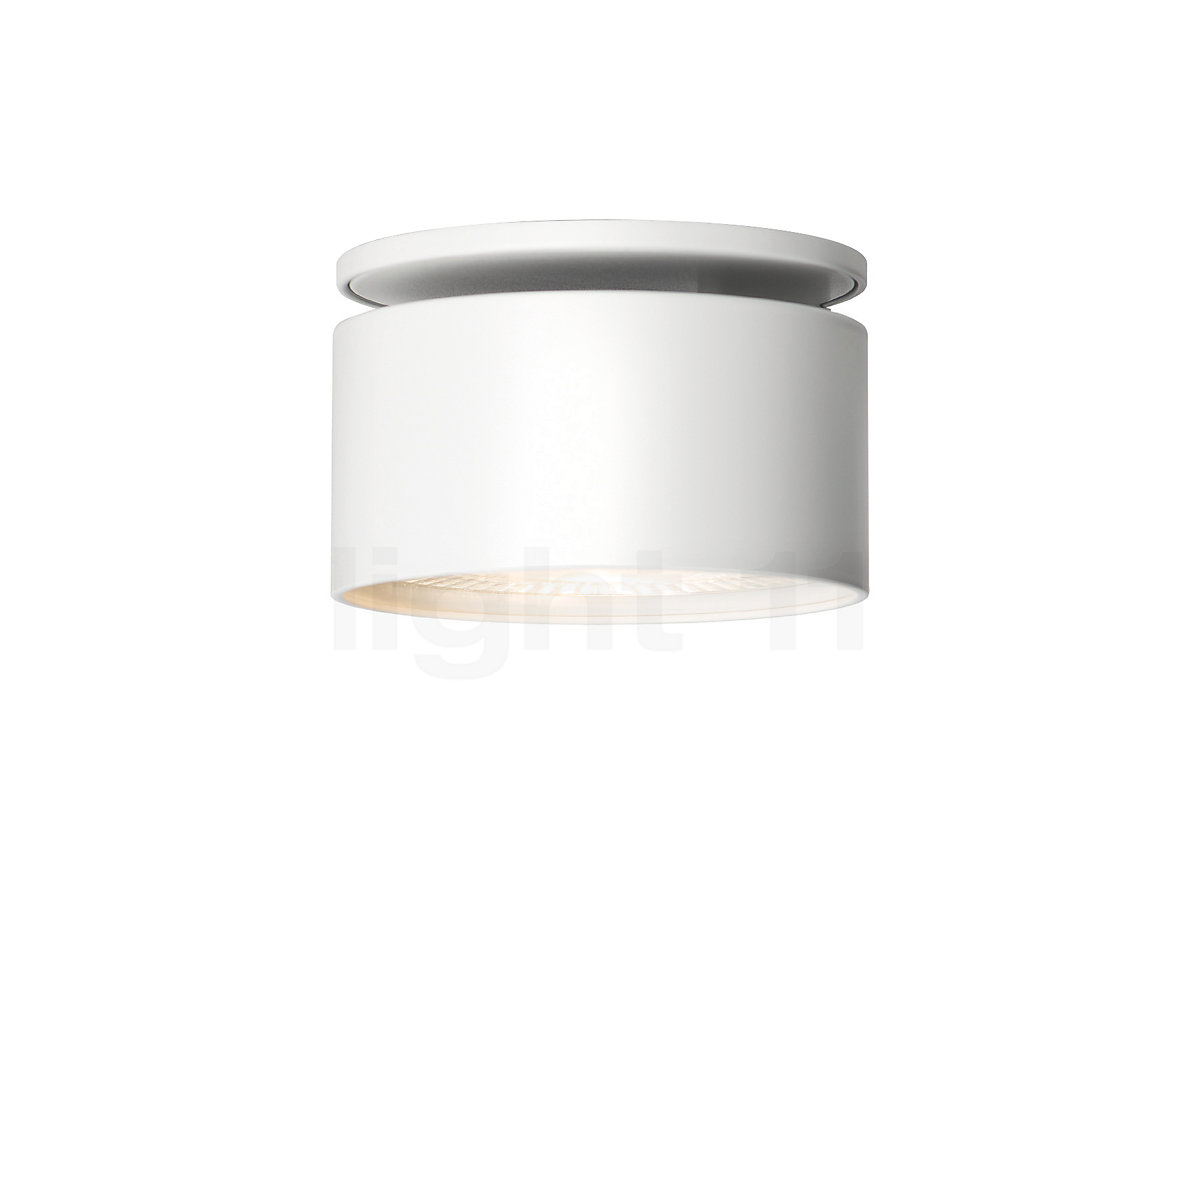 Buy Mawa Wittenberg 4 0 Recessed Ceiling Light Round With Cover Plate Led Excl Transformer At